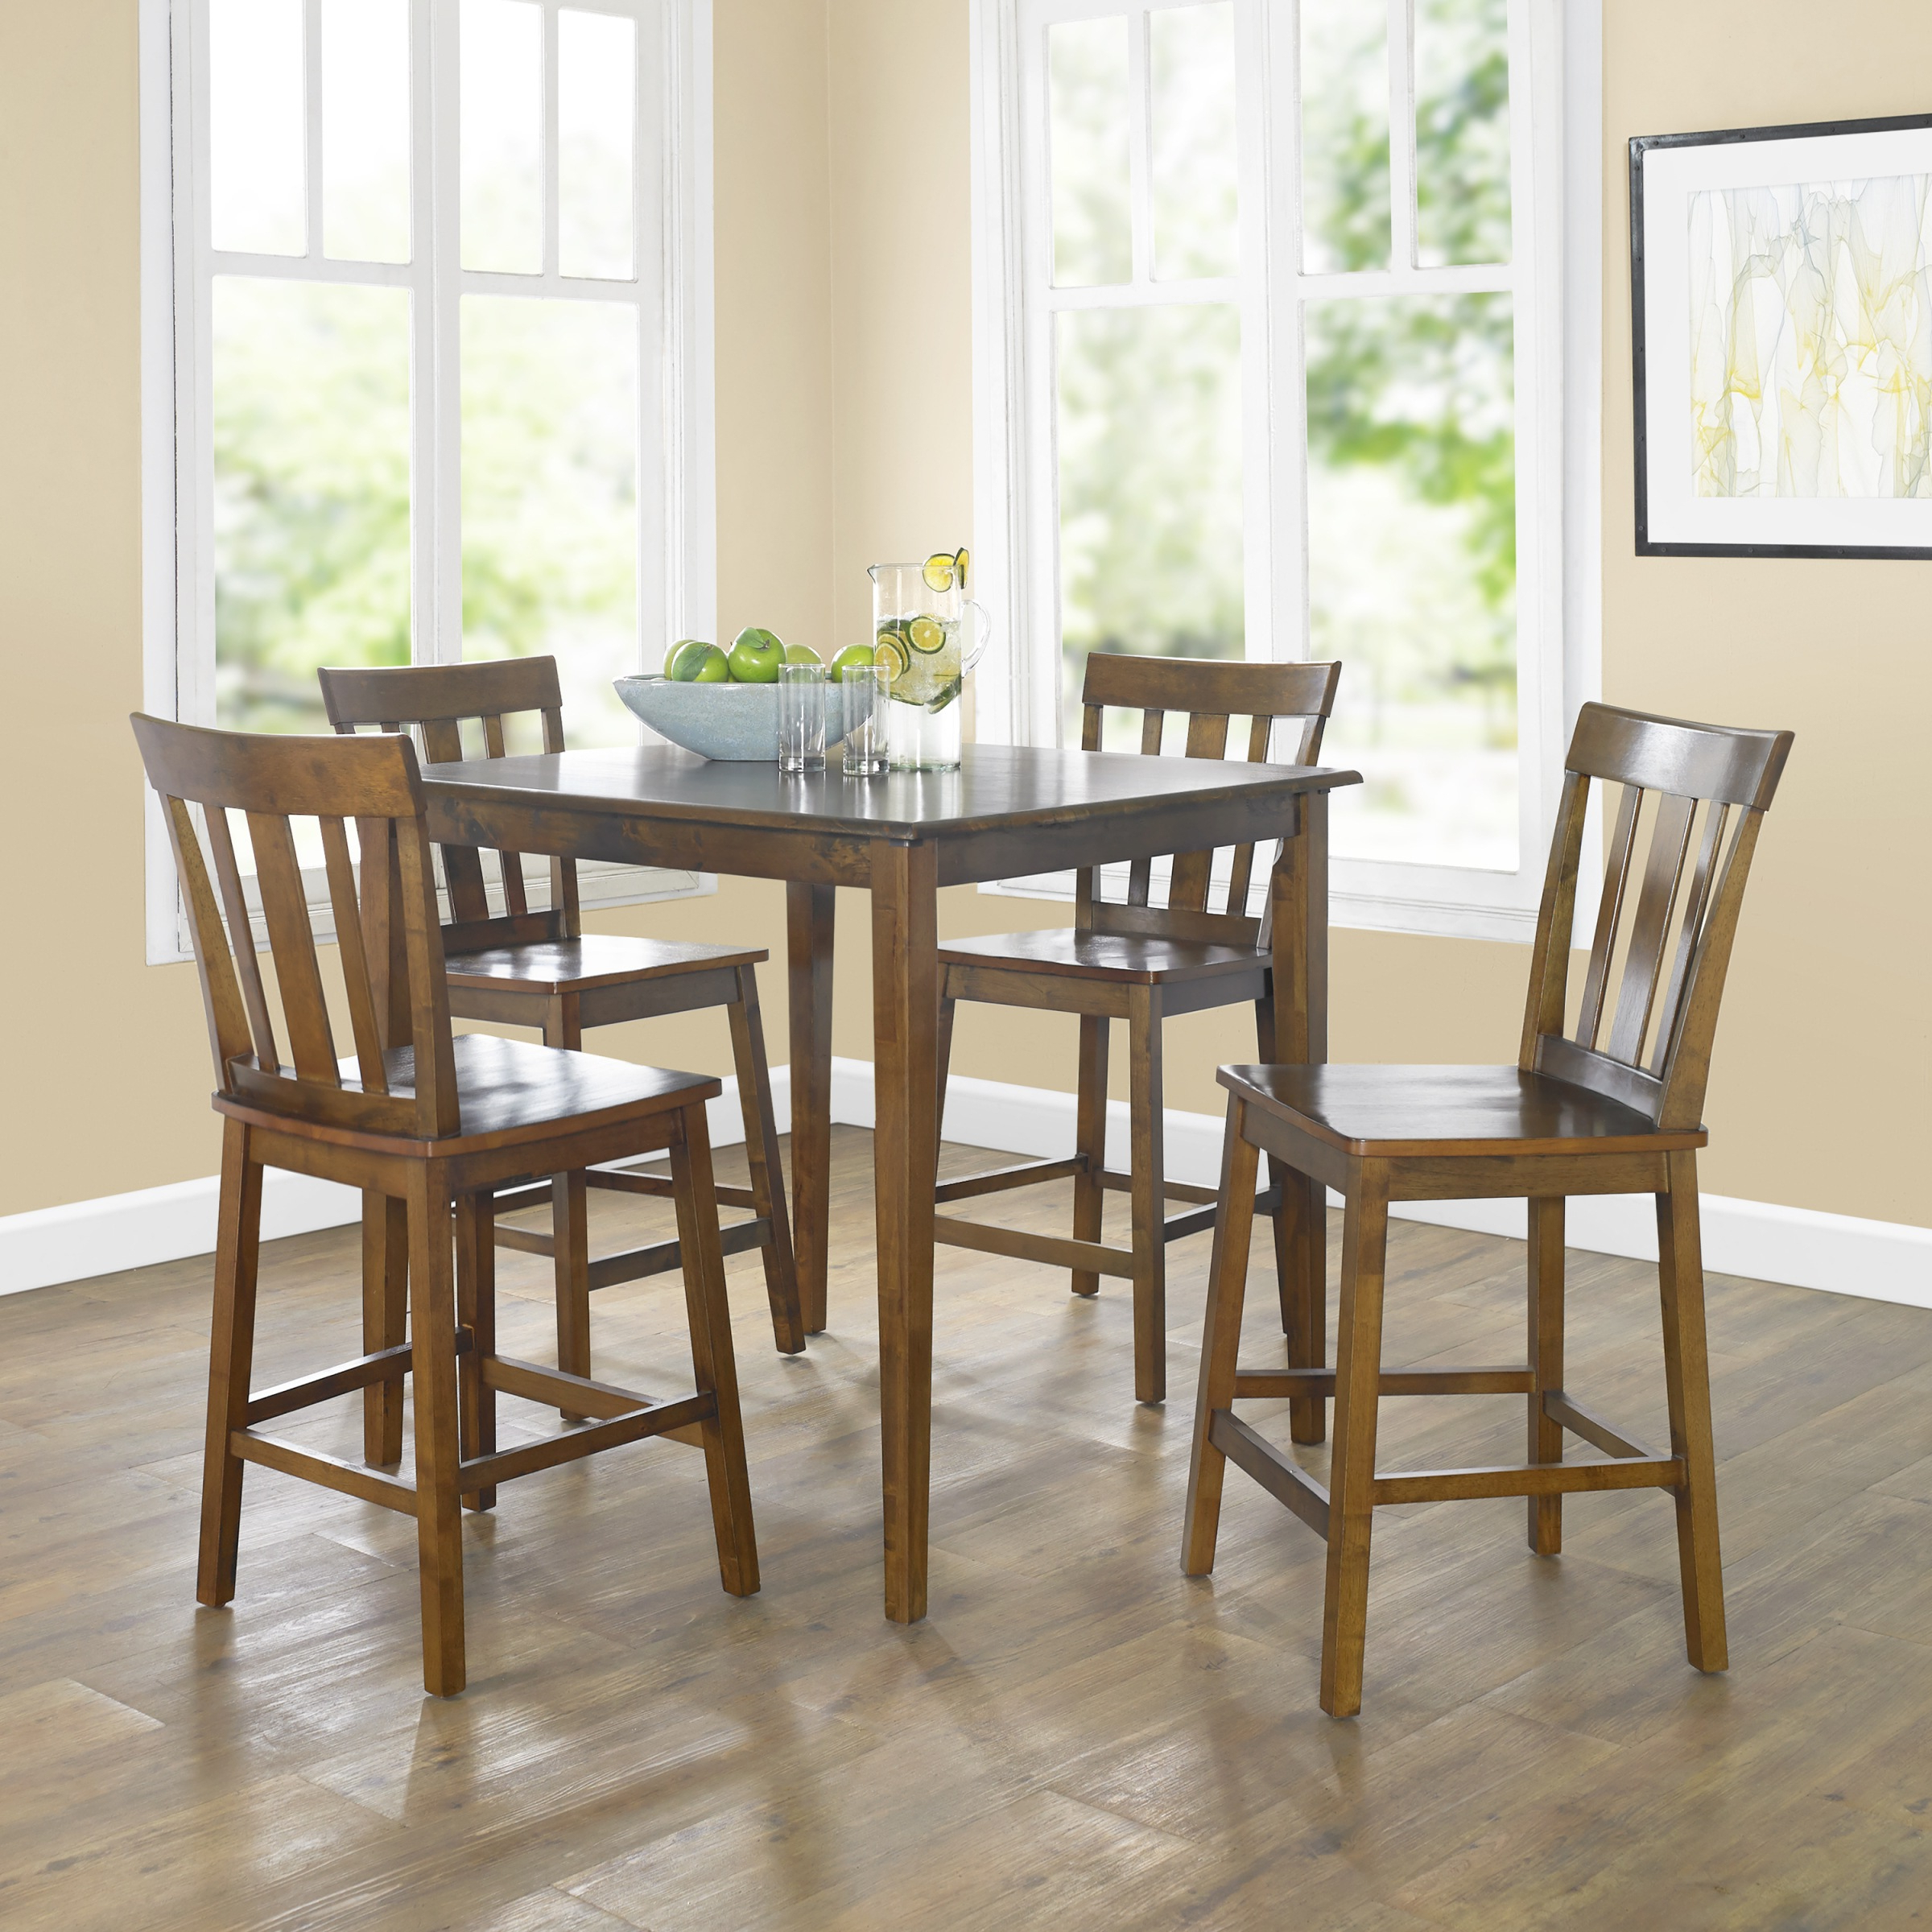 Fashionable Mainstays 5 Piece Mission Counter Height Dining Set – Walmart Intended For Goodman 5 Piece Solid Wood Dining Sets (Set Of 5) (View 4 of 25)